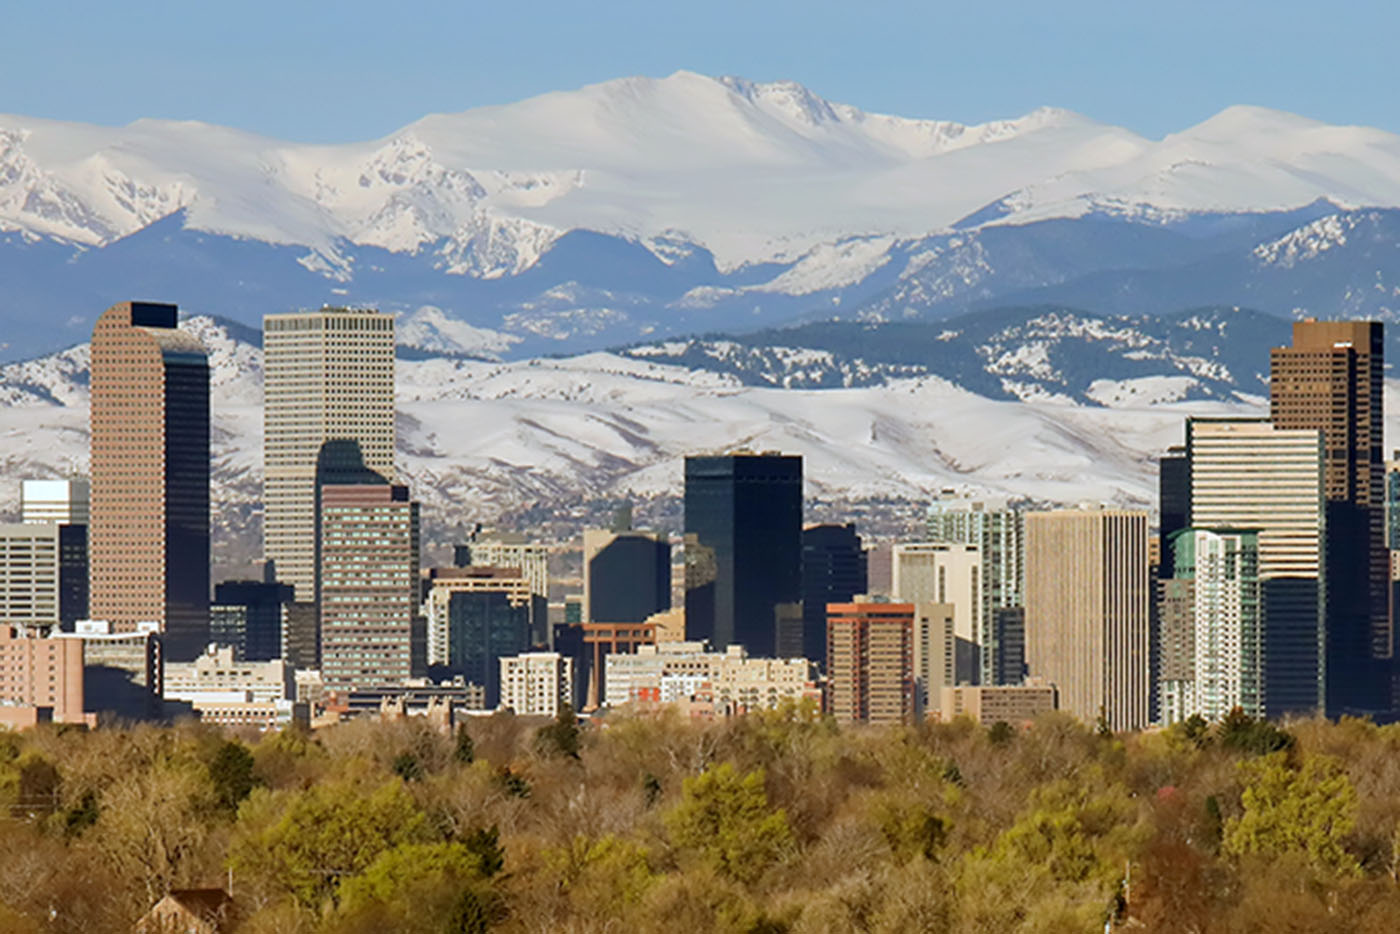 Travel to Denver on Frontier Airlines